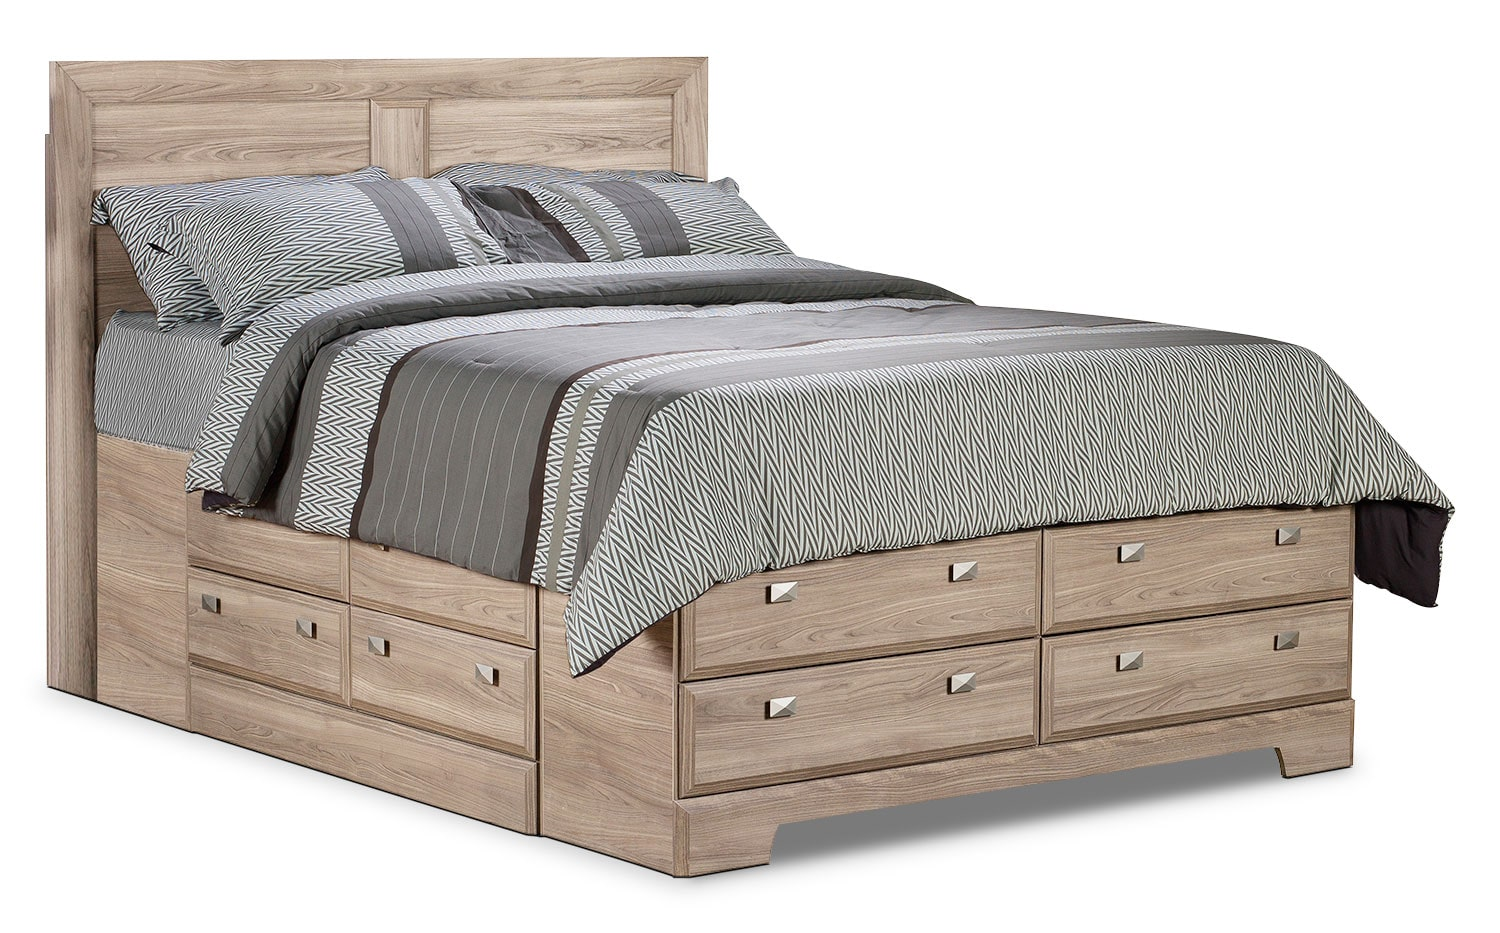 Queen Beds With Storage Drawers